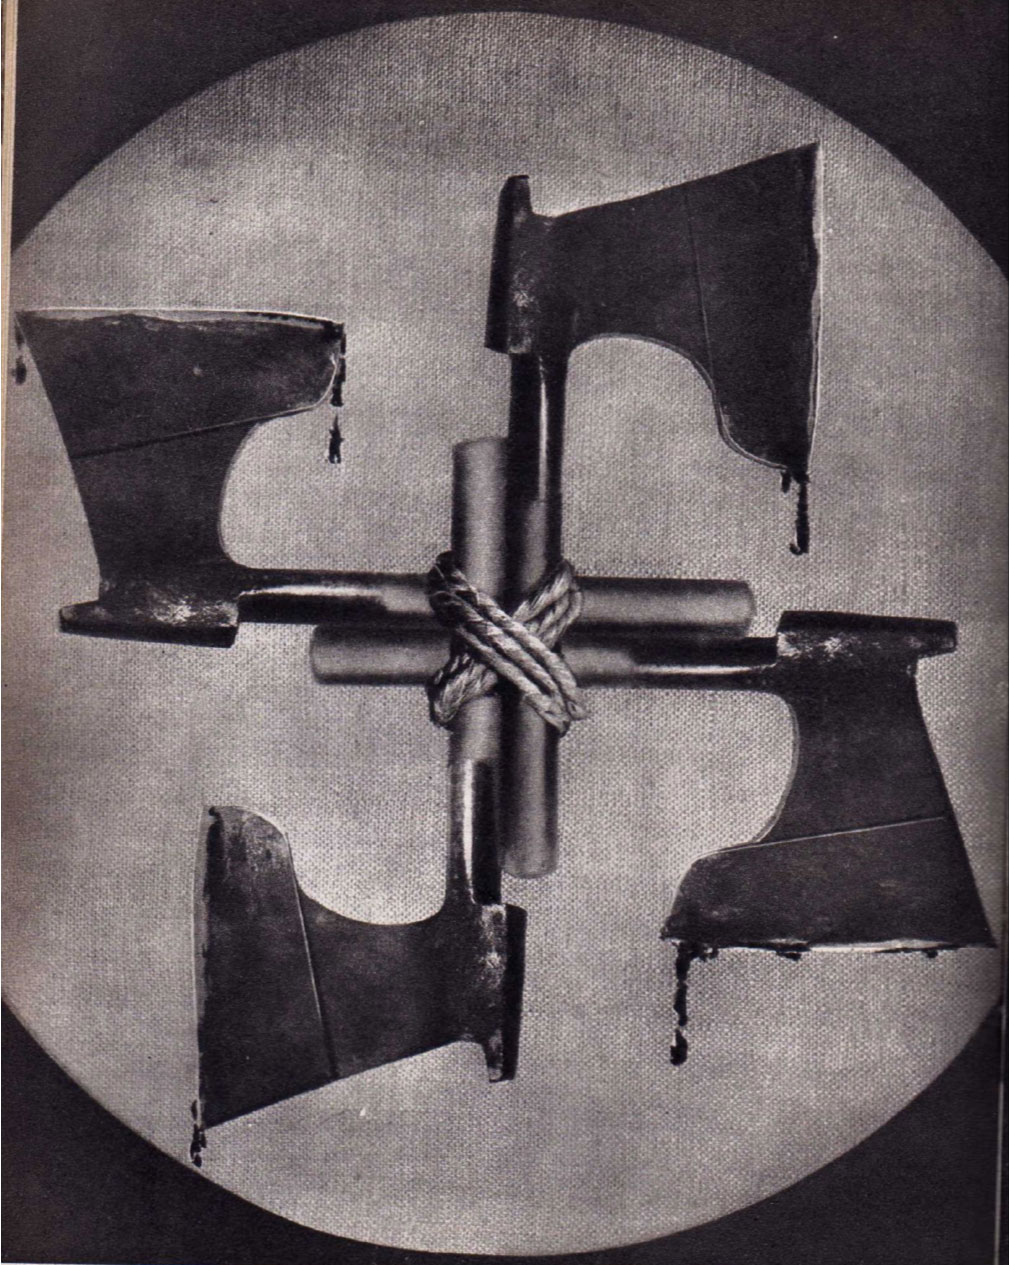 Blood and Iron (1934) by John Heartfield